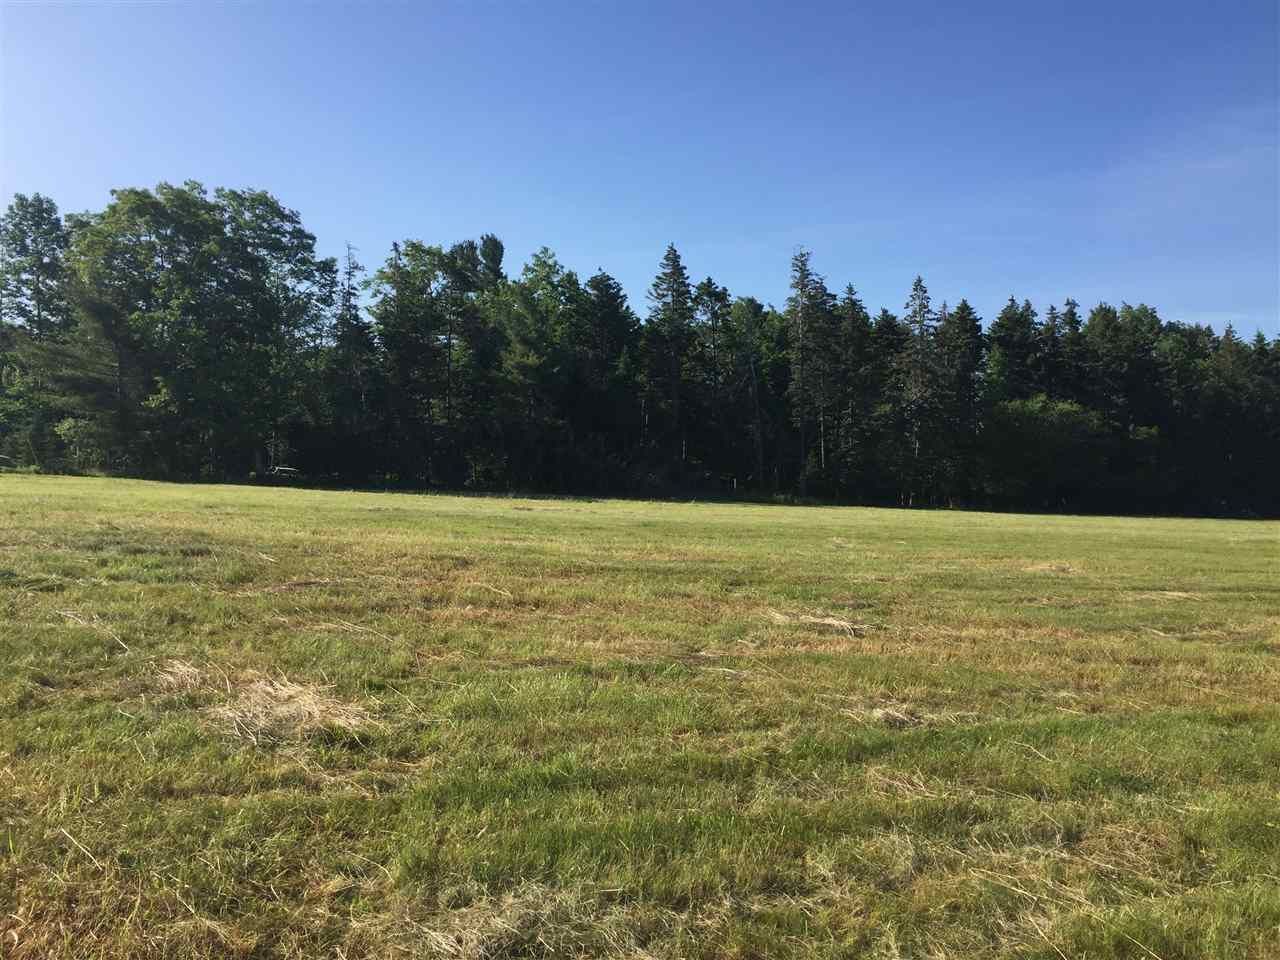 Main Photo: Lot 4 Pine Meadows Subdivision in Pine Grove: 405-Lunenburg County Vacant Land for sale (South Shore)  : MLS®# 202007559